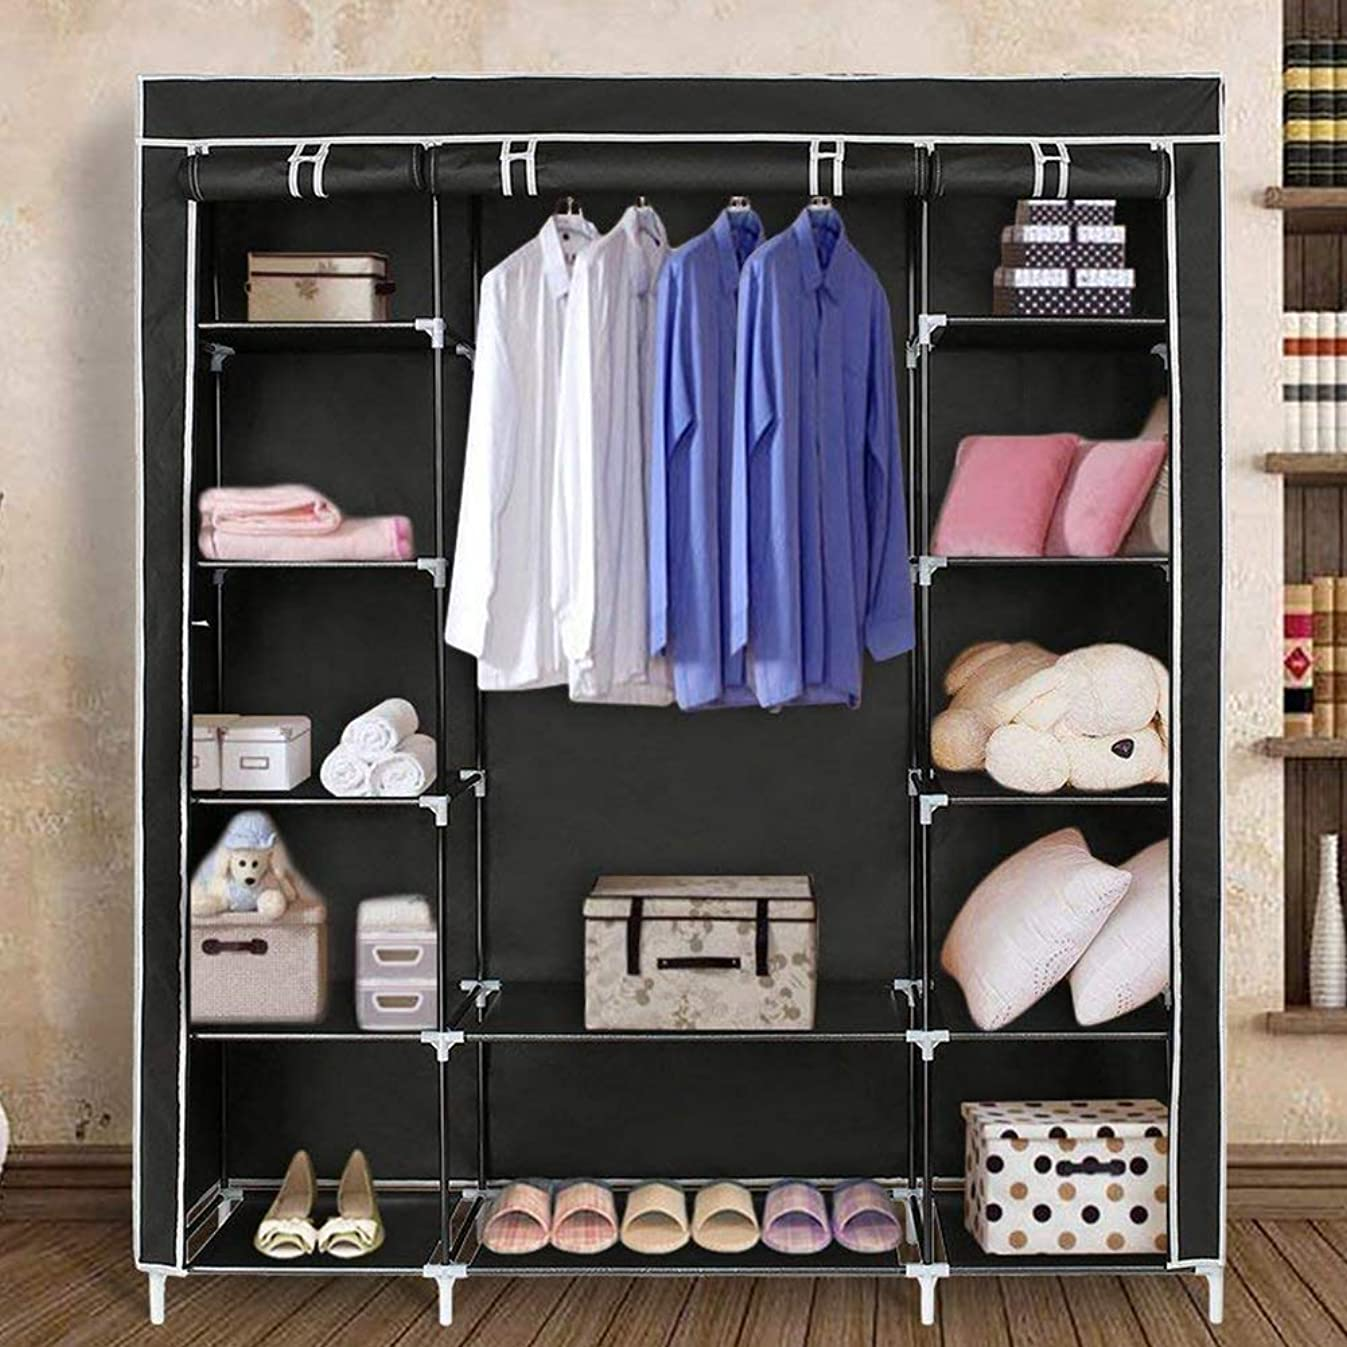 Blissun 59'' Portable Clothes Closet Non-Woven Fabric Wardrobe Storage Organizer